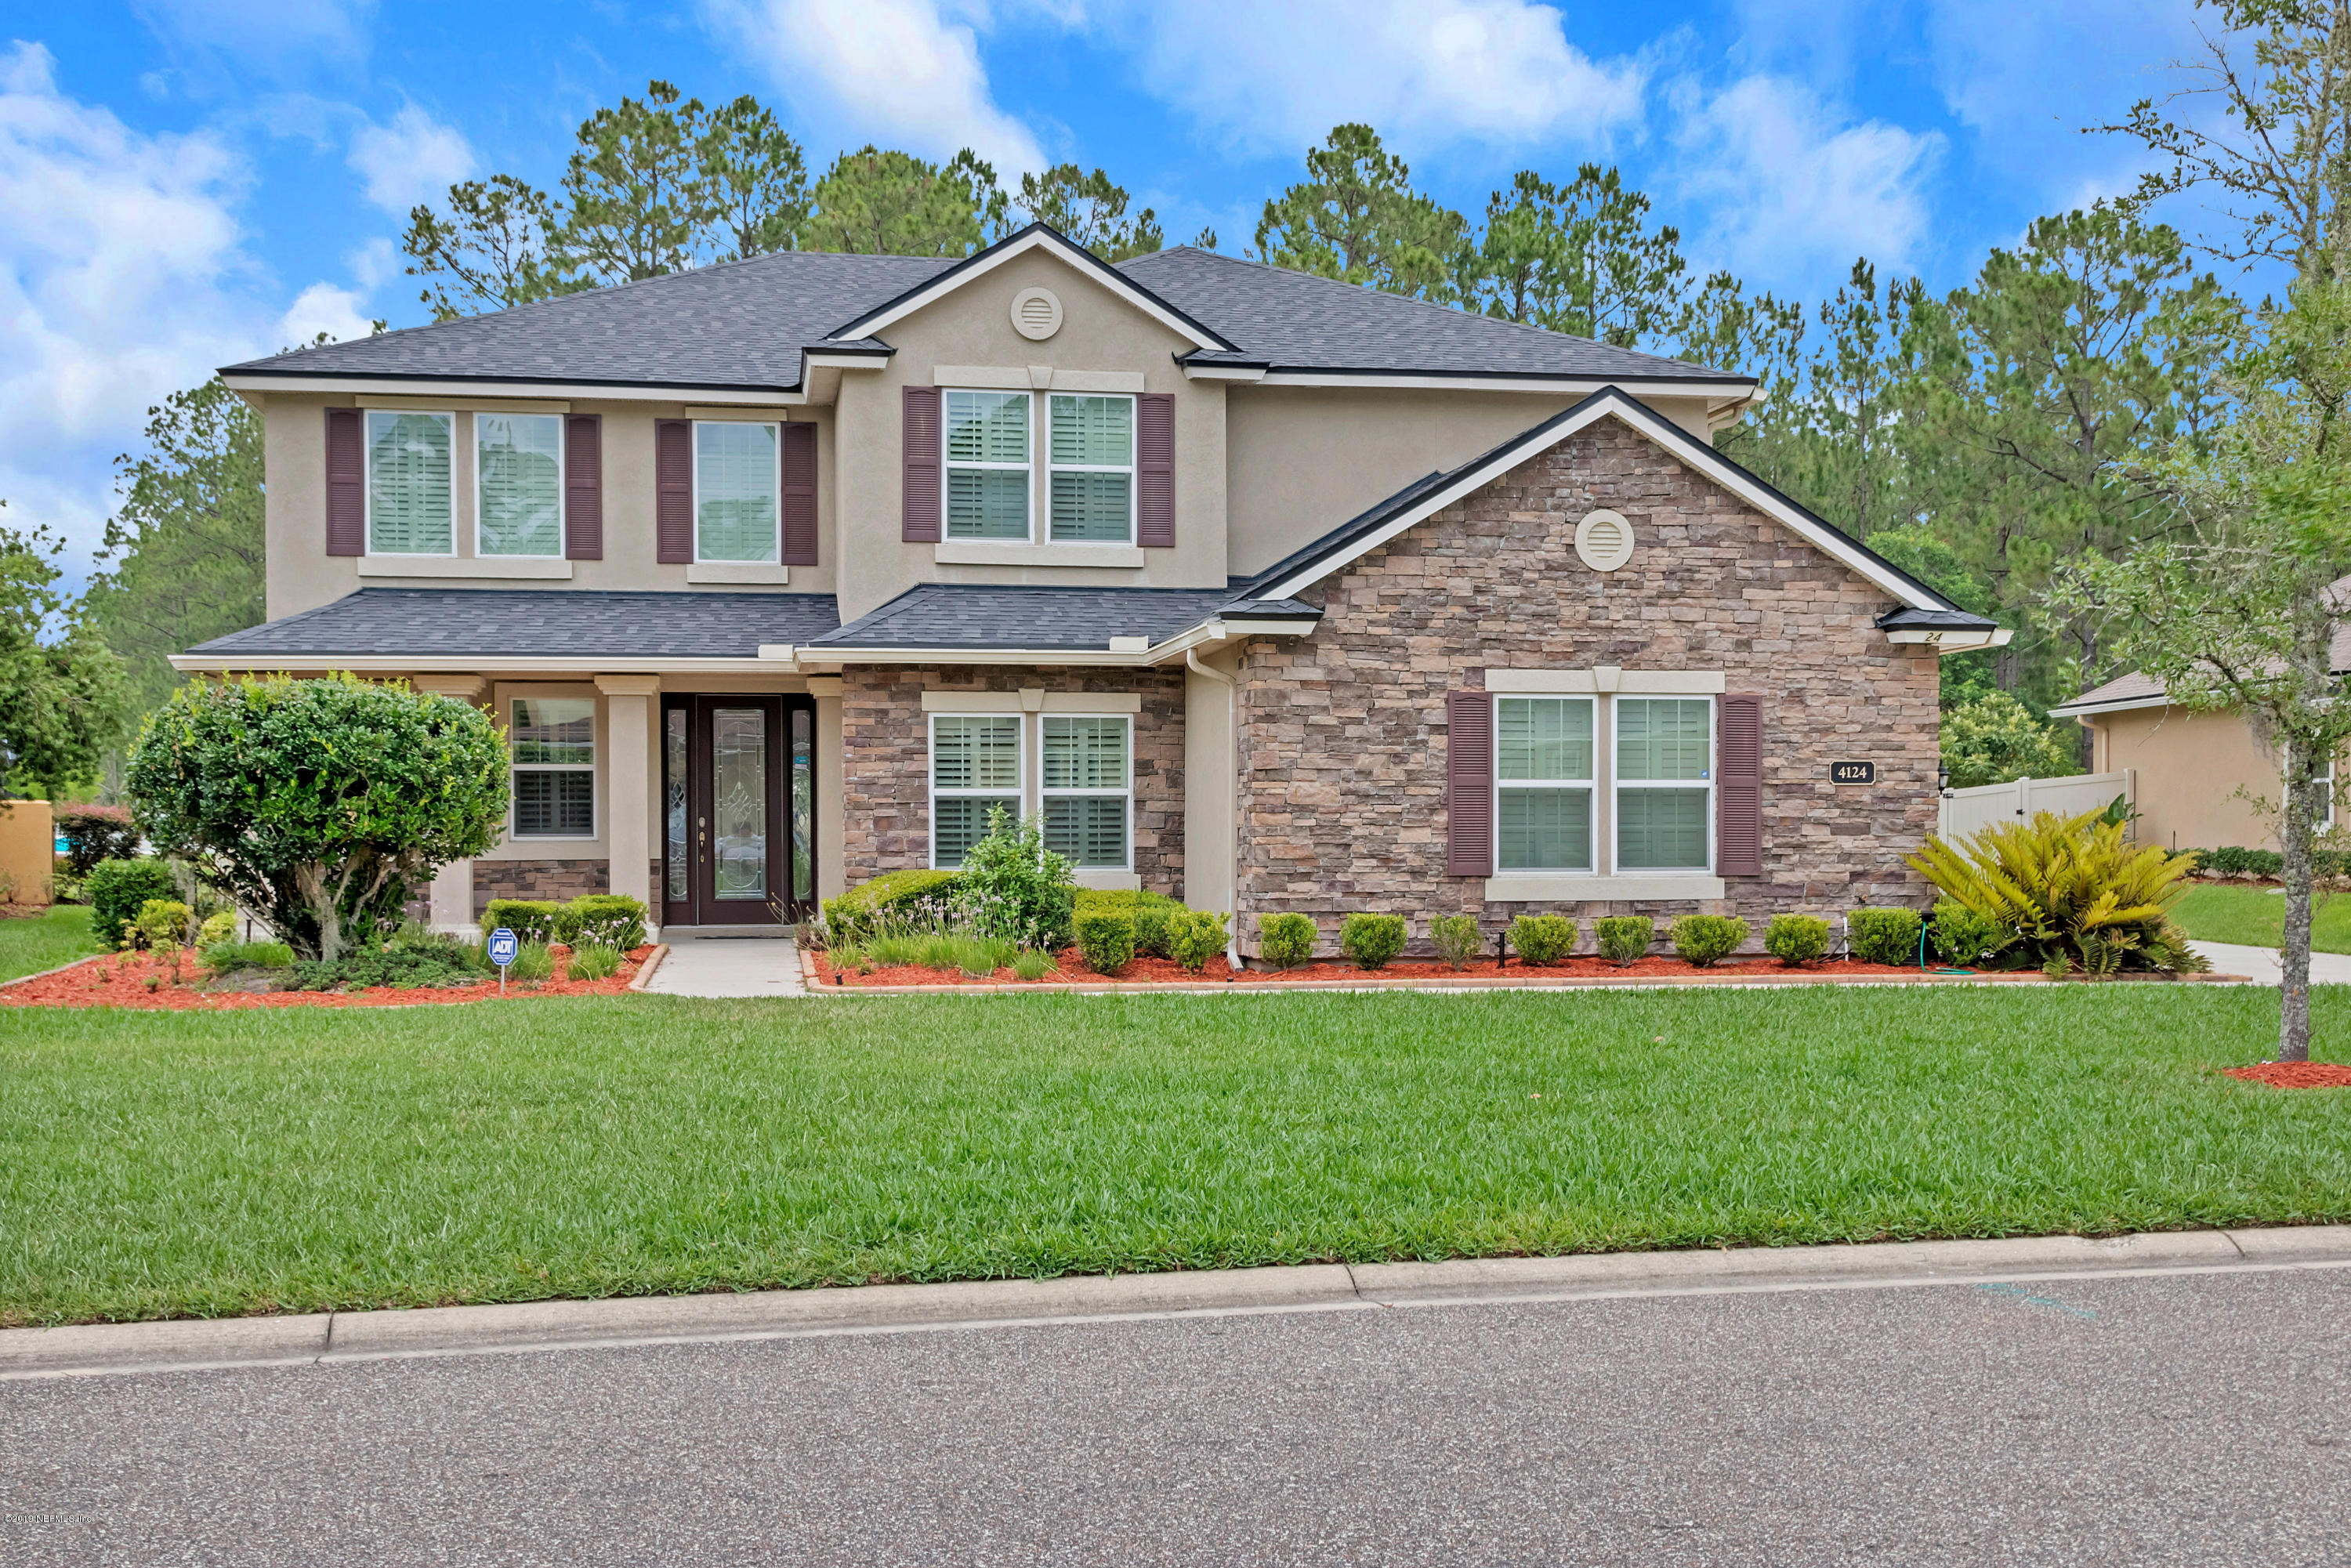 4124 EAGLE LANDING, ORANGE PARK, FLORIDA 32065, 5 Bedrooms Bedrooms, ,4 BathroomsBathrooms,Residential - single family,For sale,EAGLE LANDING,999702